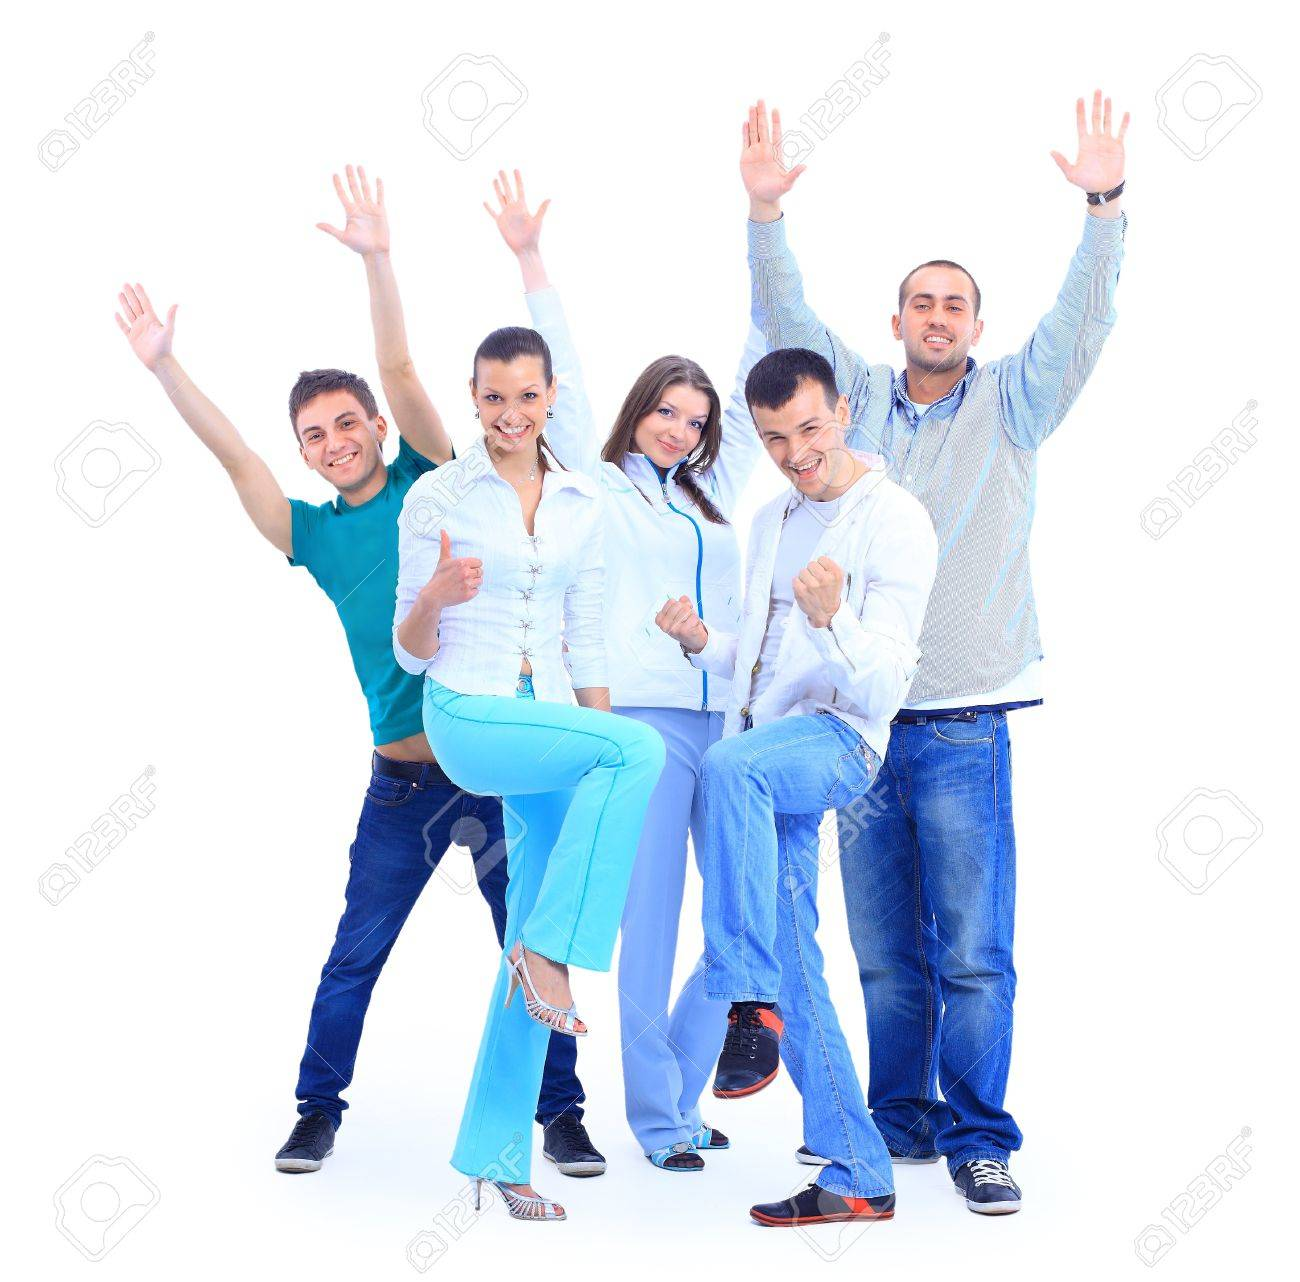 Group of the young smiling people. Over white background Stock Photo - 11315081